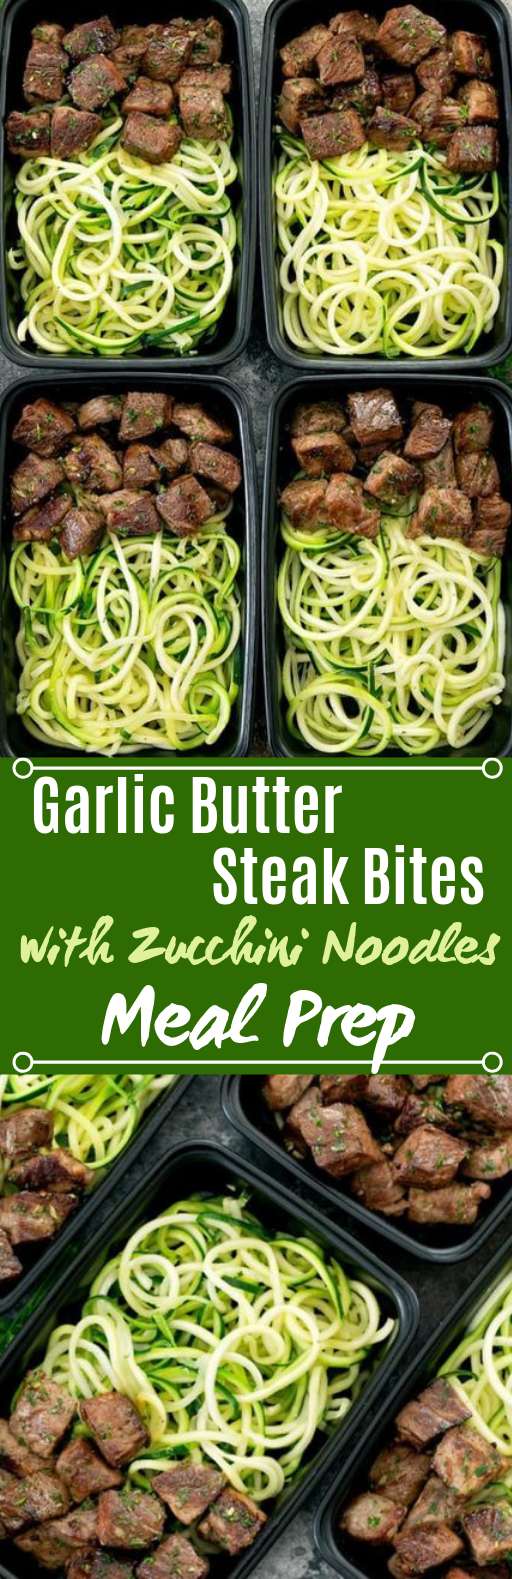 Garlic Butter Steak Bites with Zucchini Noodles Meal Prep #healthy #lowcarb